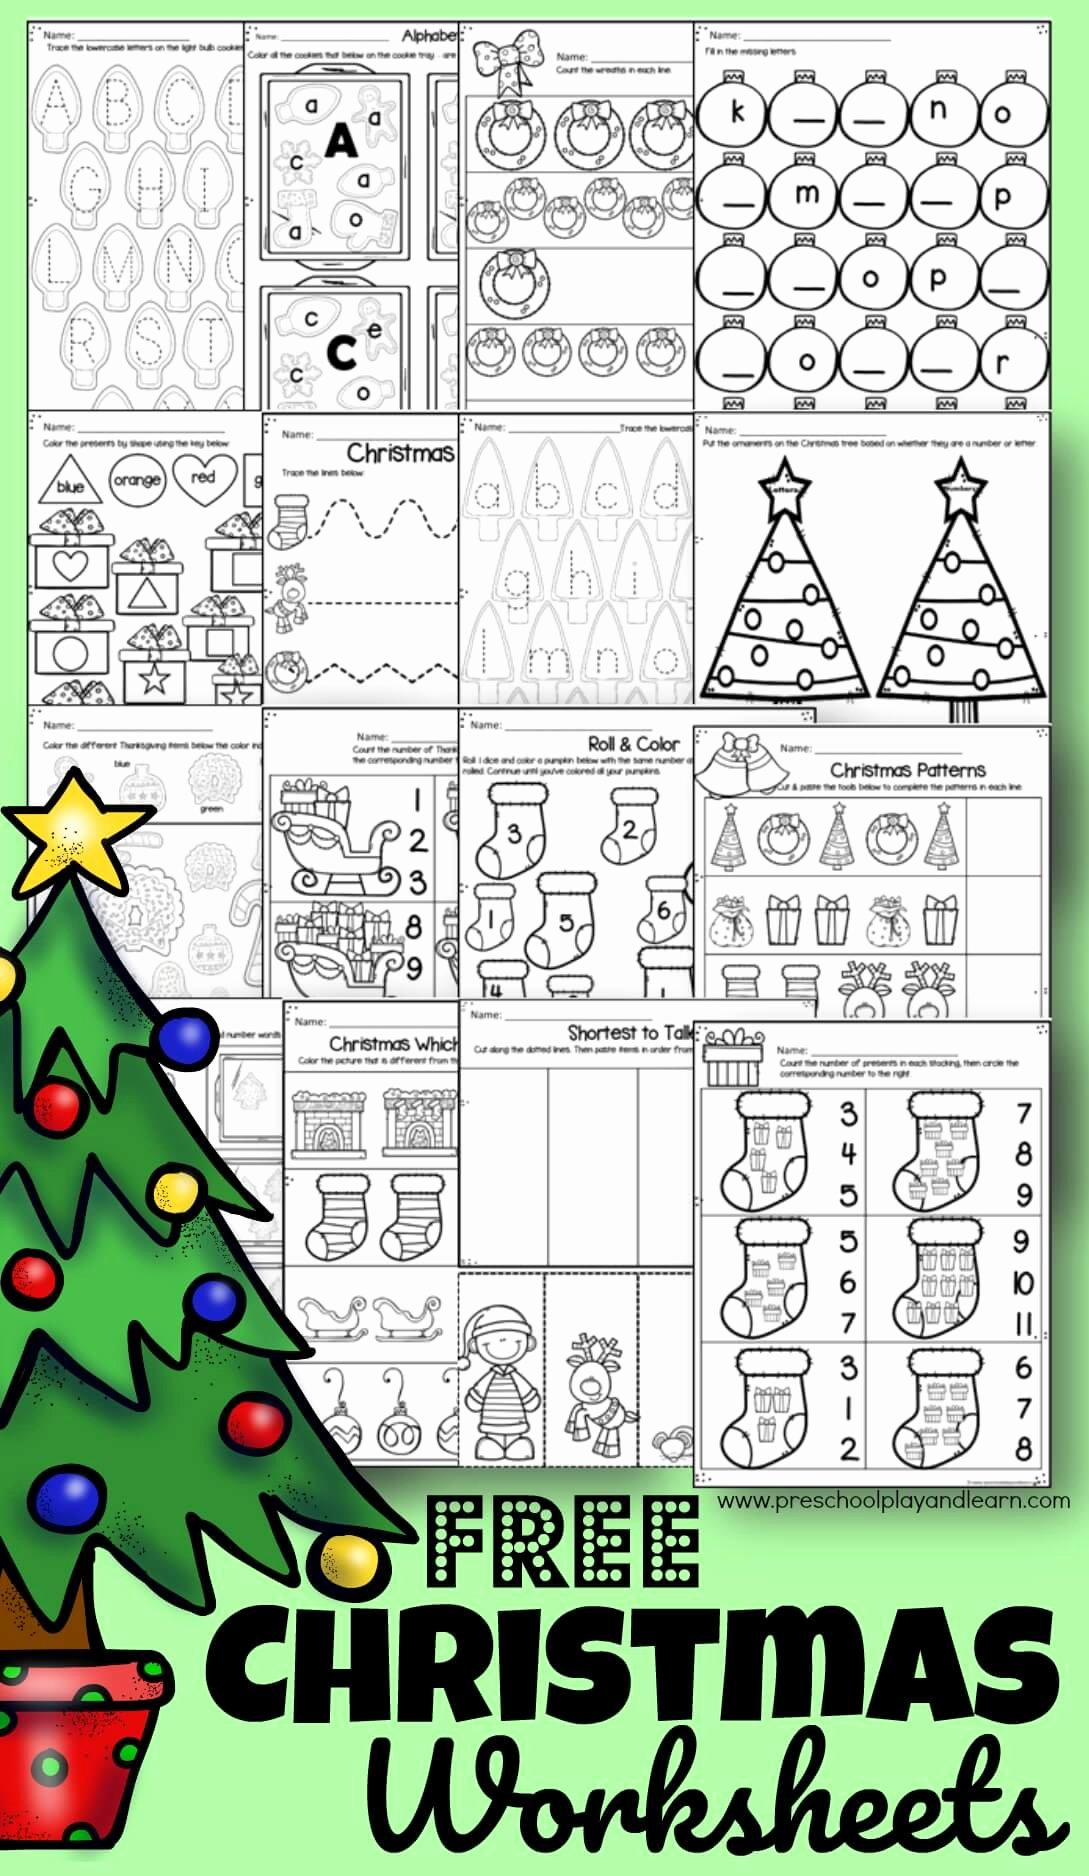 Christmas Pattern Worksheets for Preschoolers Lovely Free Christmas Worksheets for Preschoolers